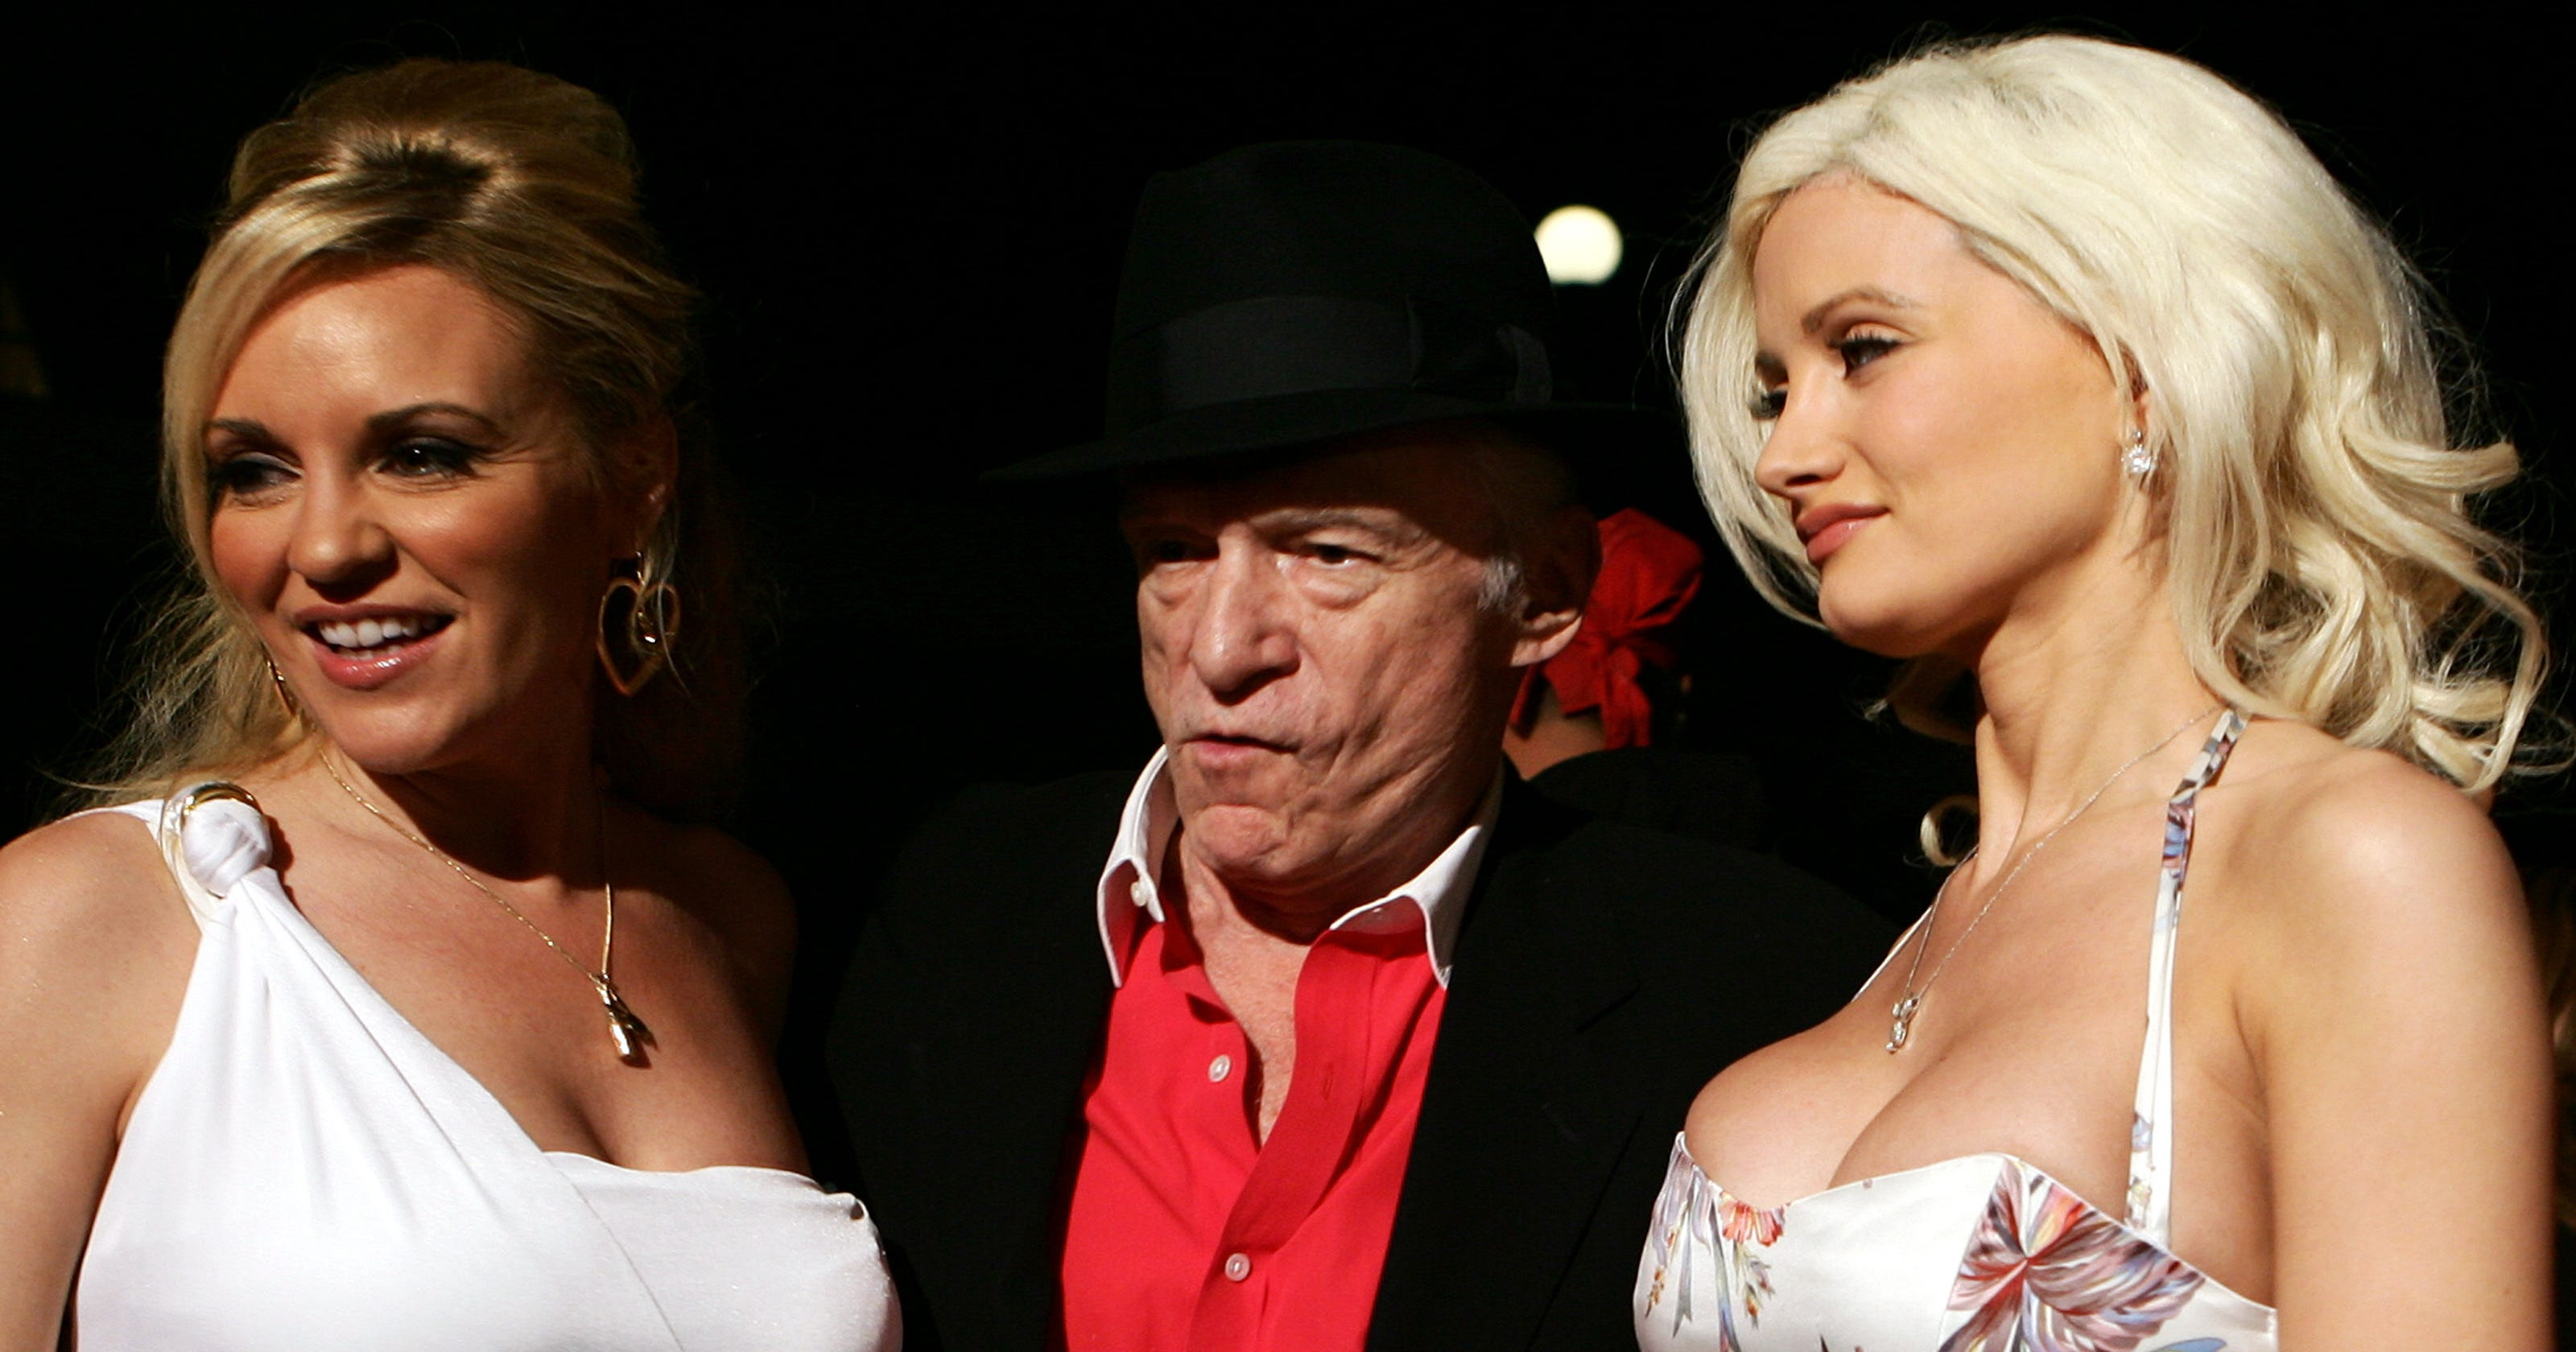 588de5117 Hugh Hefner: Women can't agree on 'Playboy' icon's complicated legacy